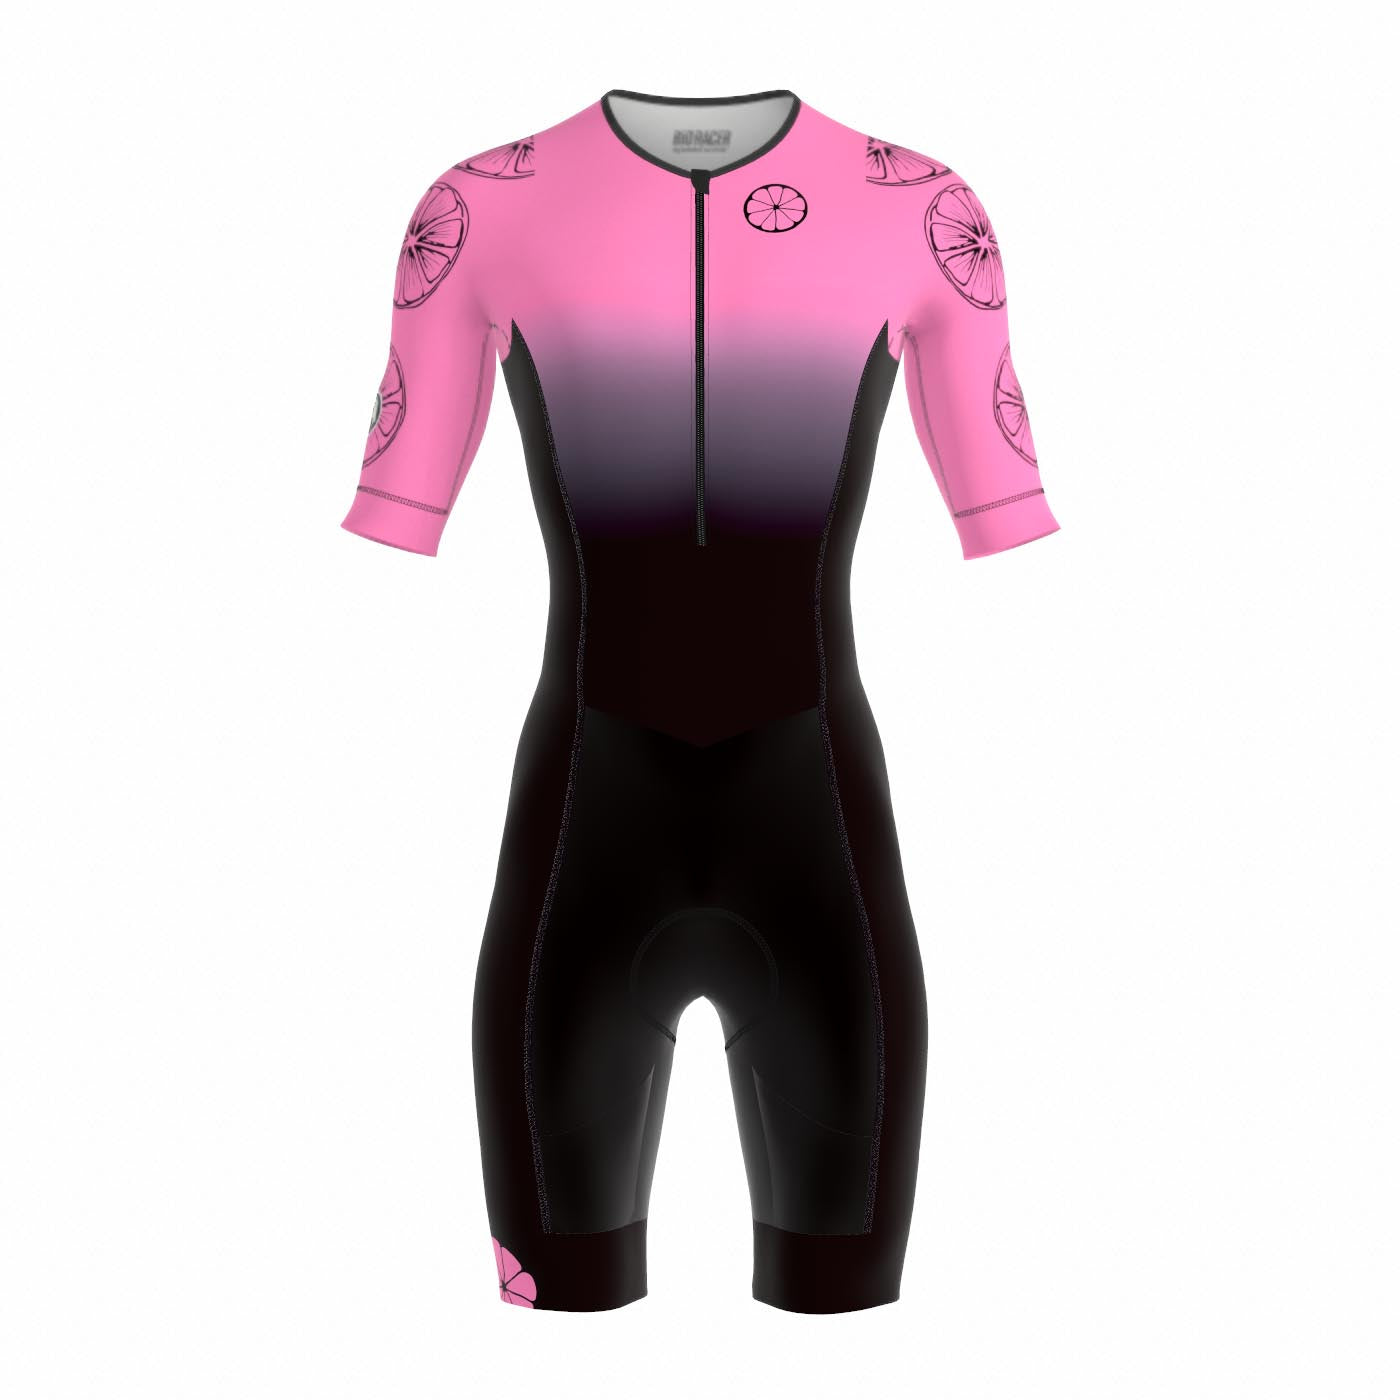 GLOW Women's pro-level tri suit